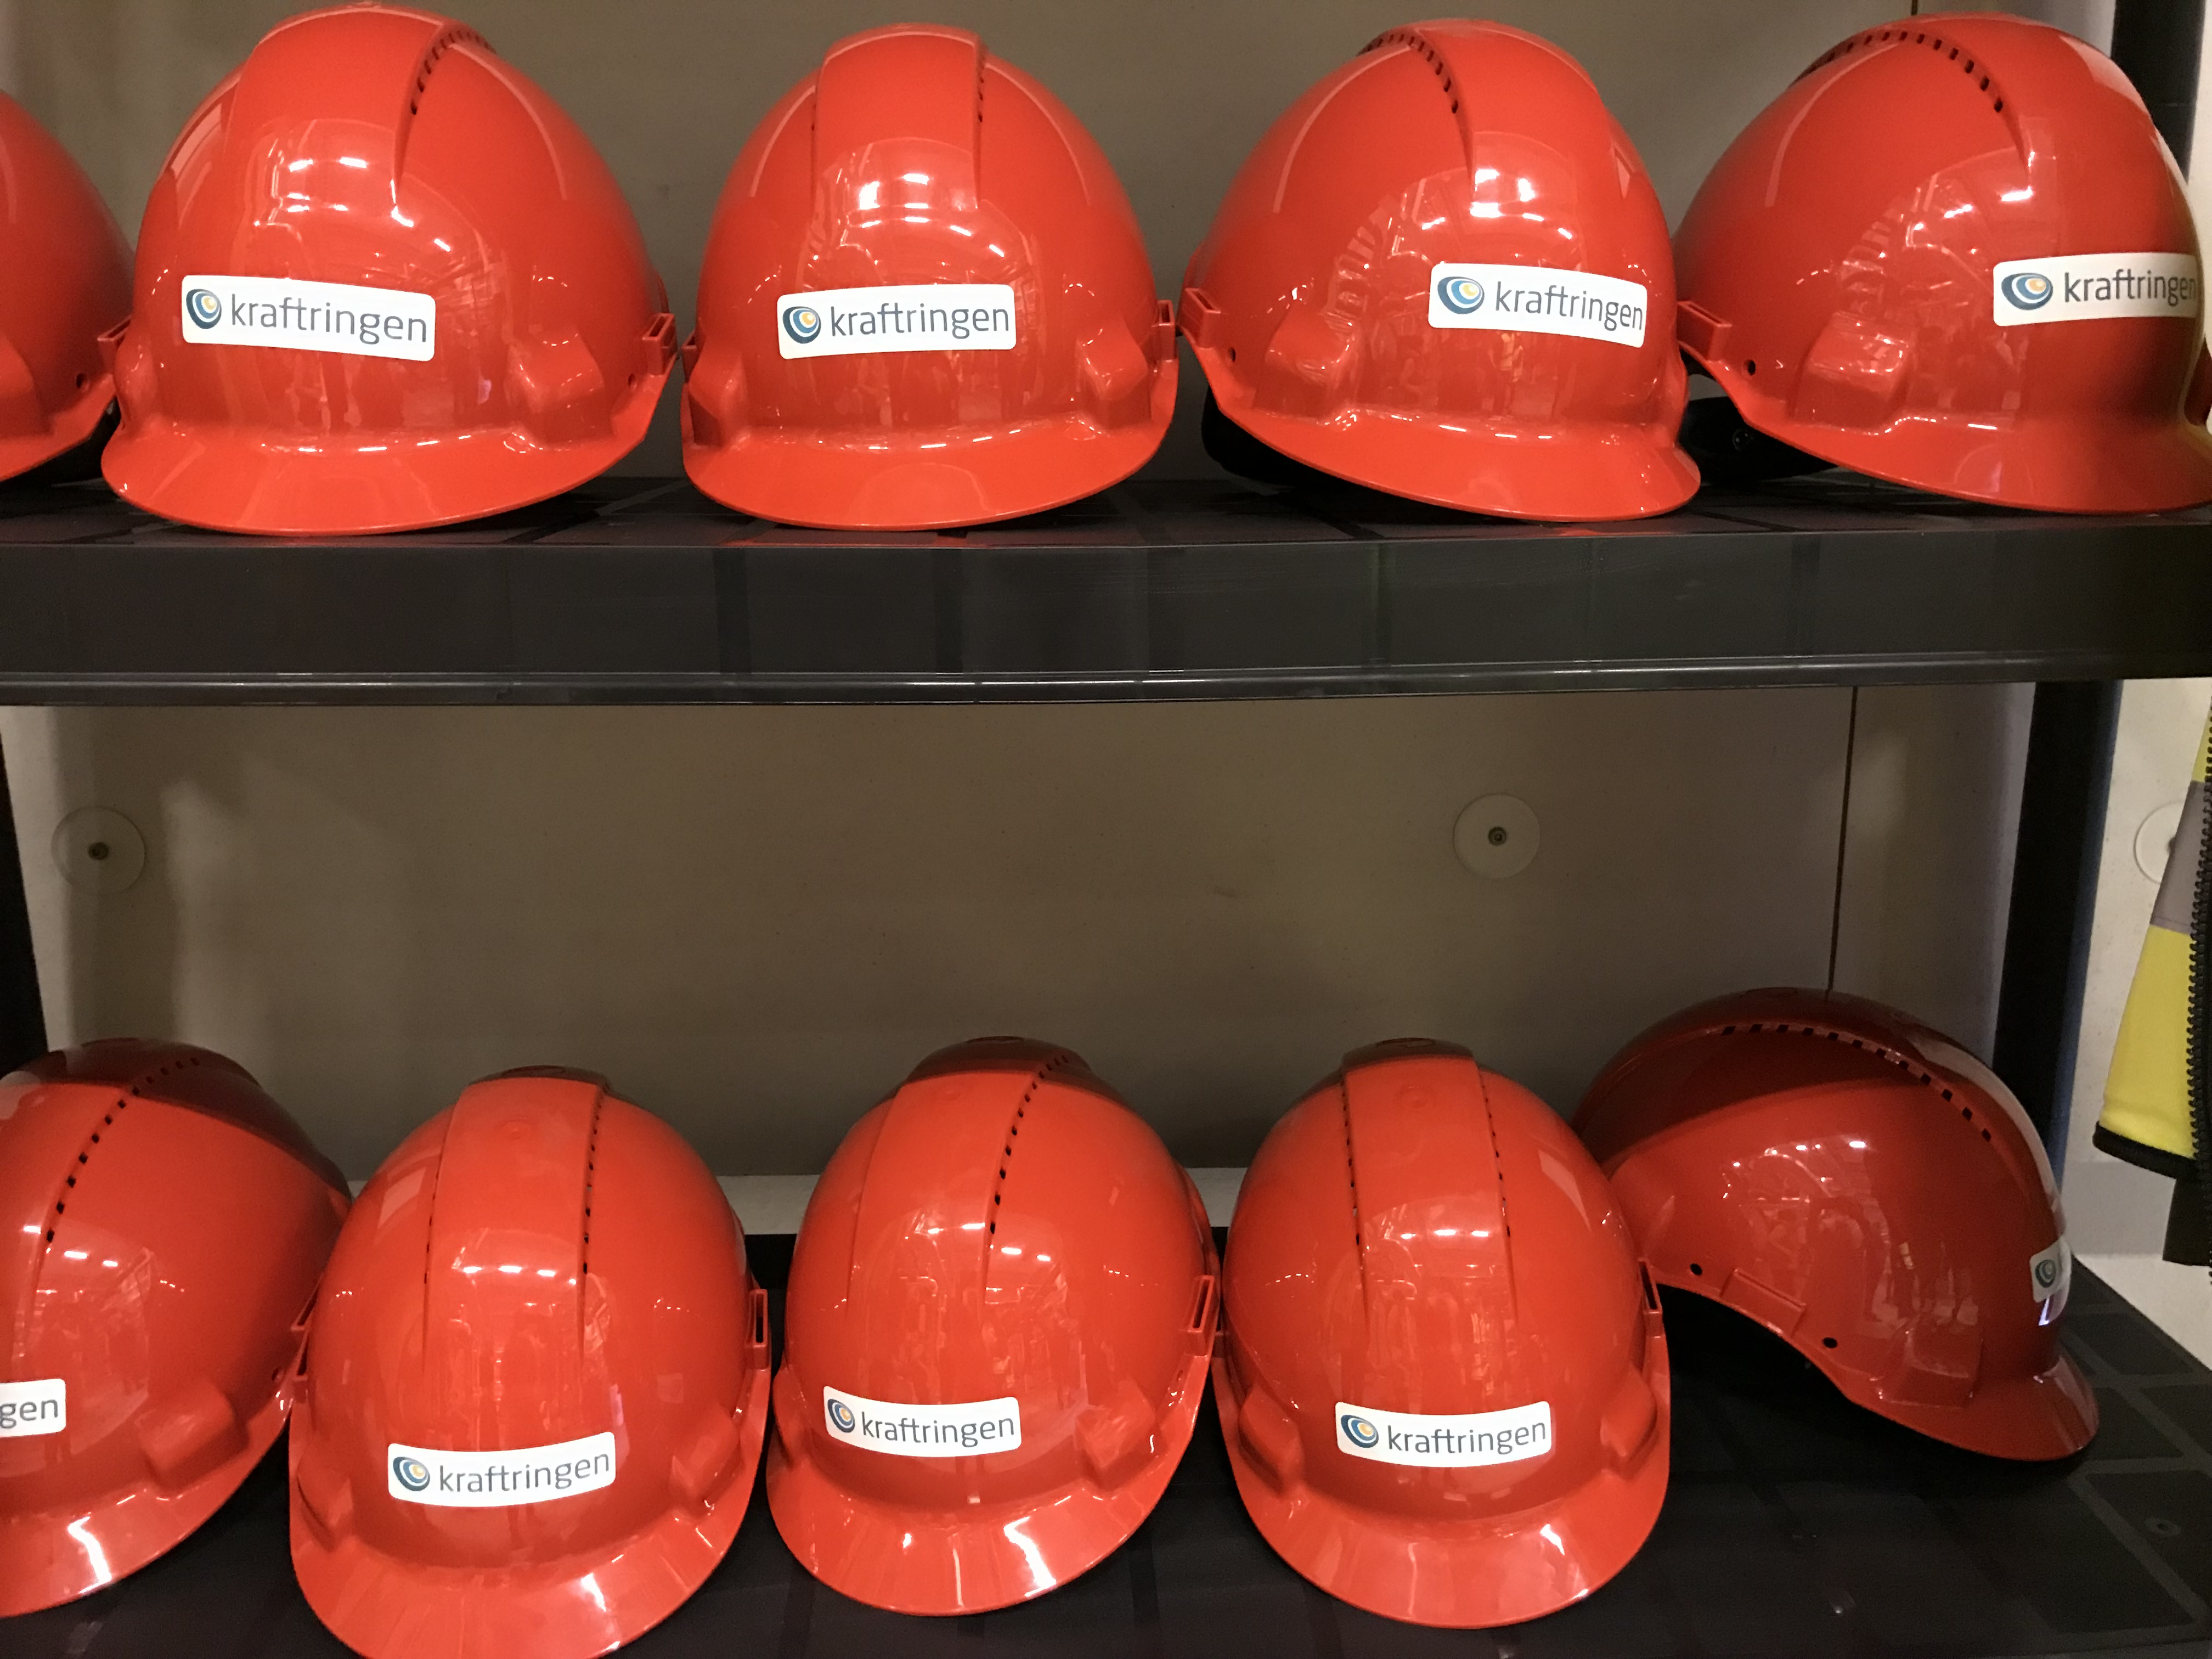 Kraftringen helmets at the energy central of the MAX IV Laboratory.